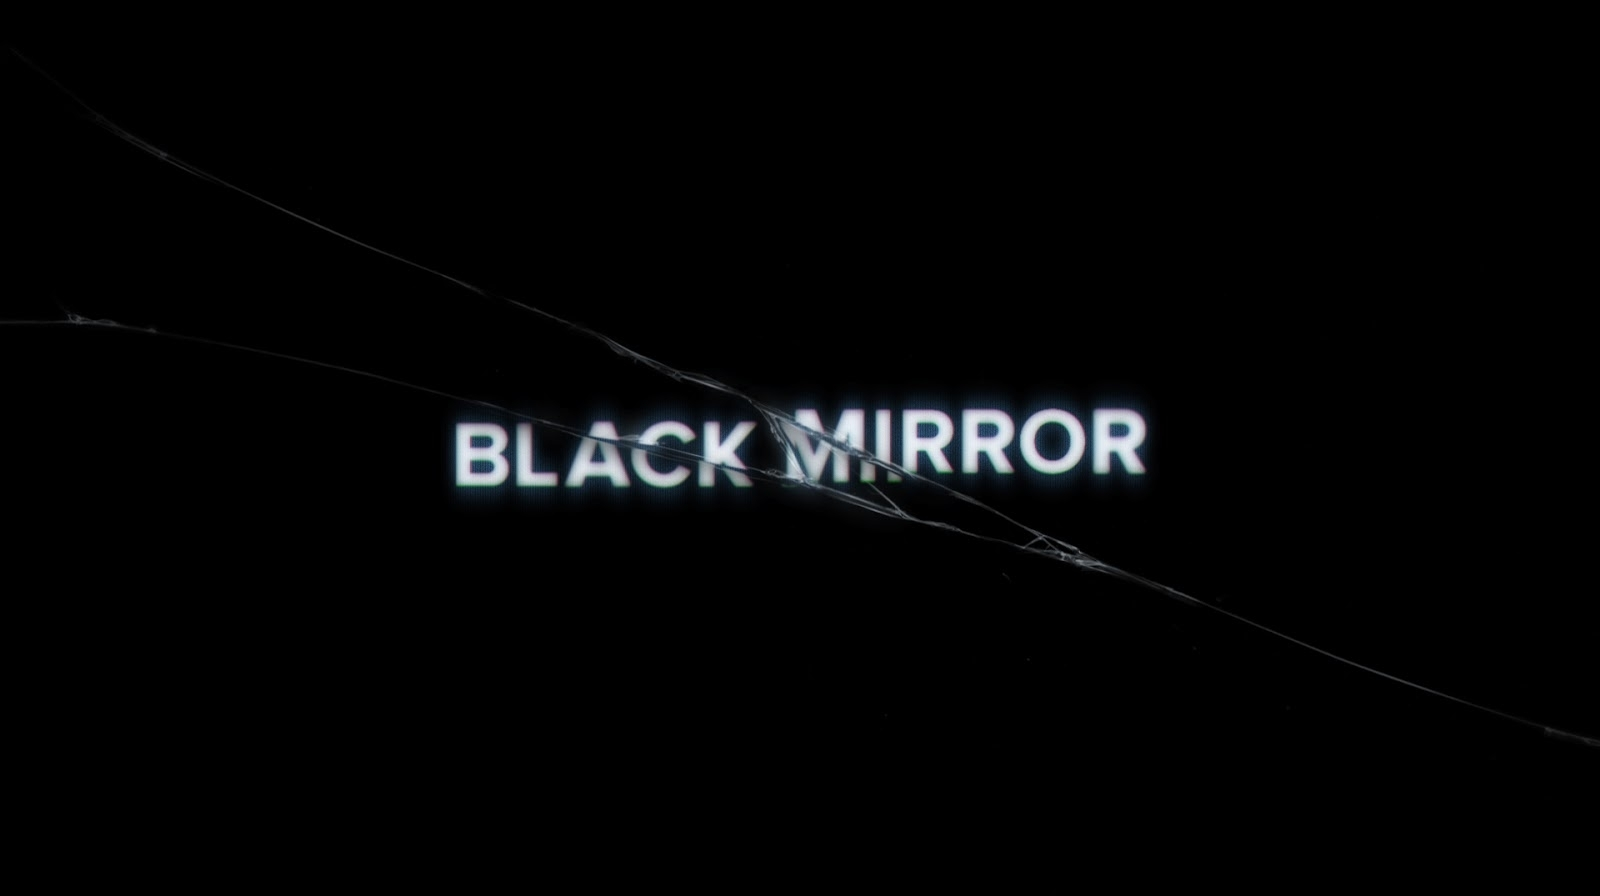 'Black Mirror' lands Season 5 renewal at Netflix